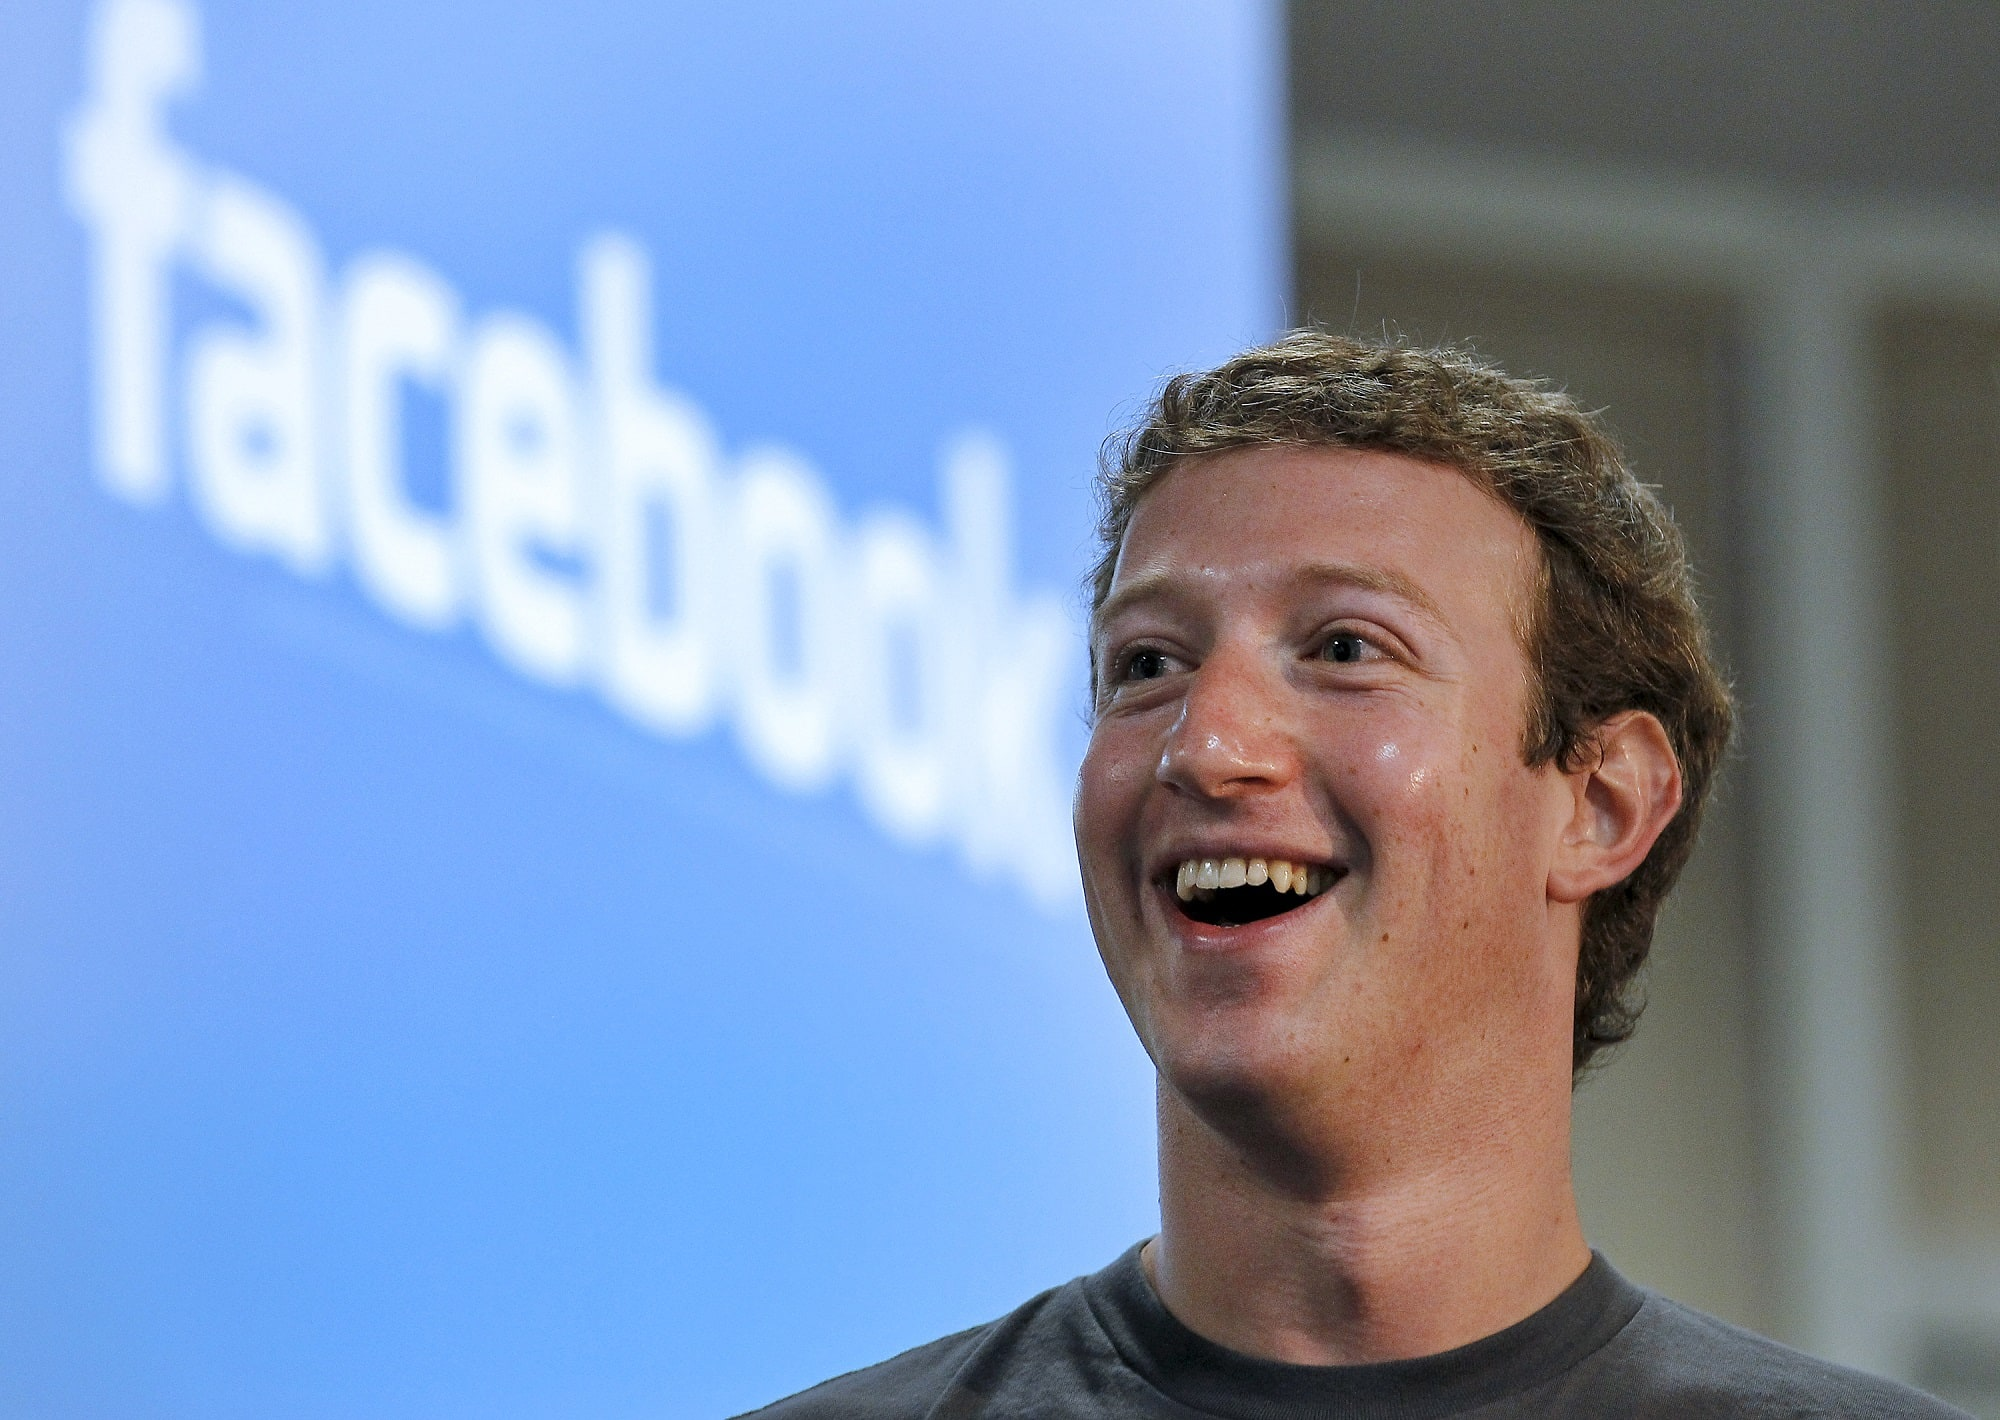 Wall Street analysts expect a big 2020 from these internet stocks including Facebook, and Amazon